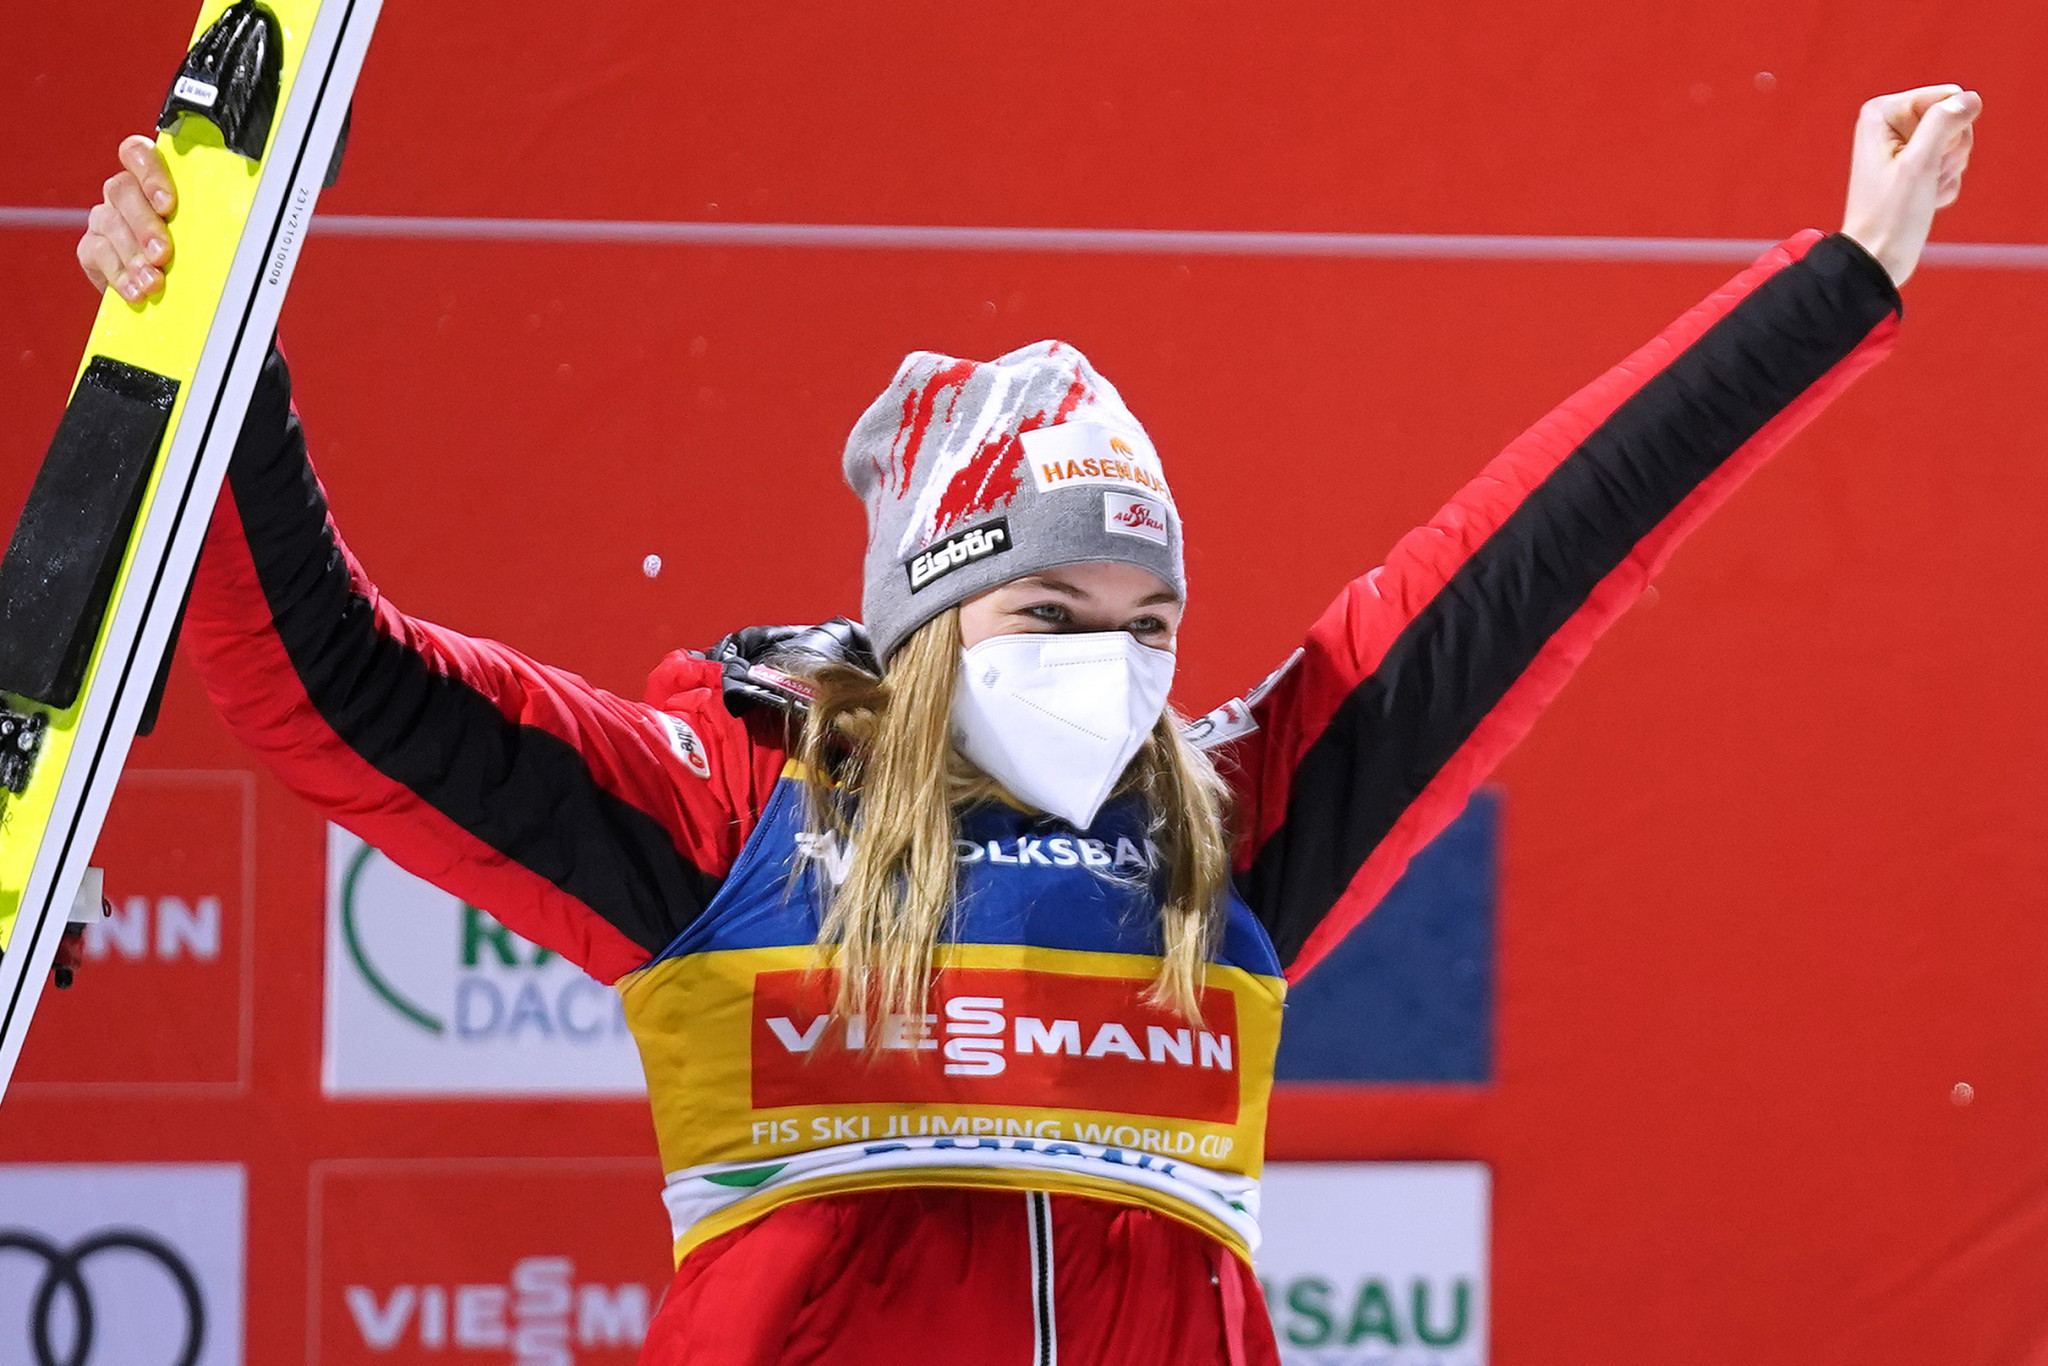 Marita Kramer of Austria was the winner at the season-opening FIS Ski Jumping World Cup event in Ramsau ©Getty Images